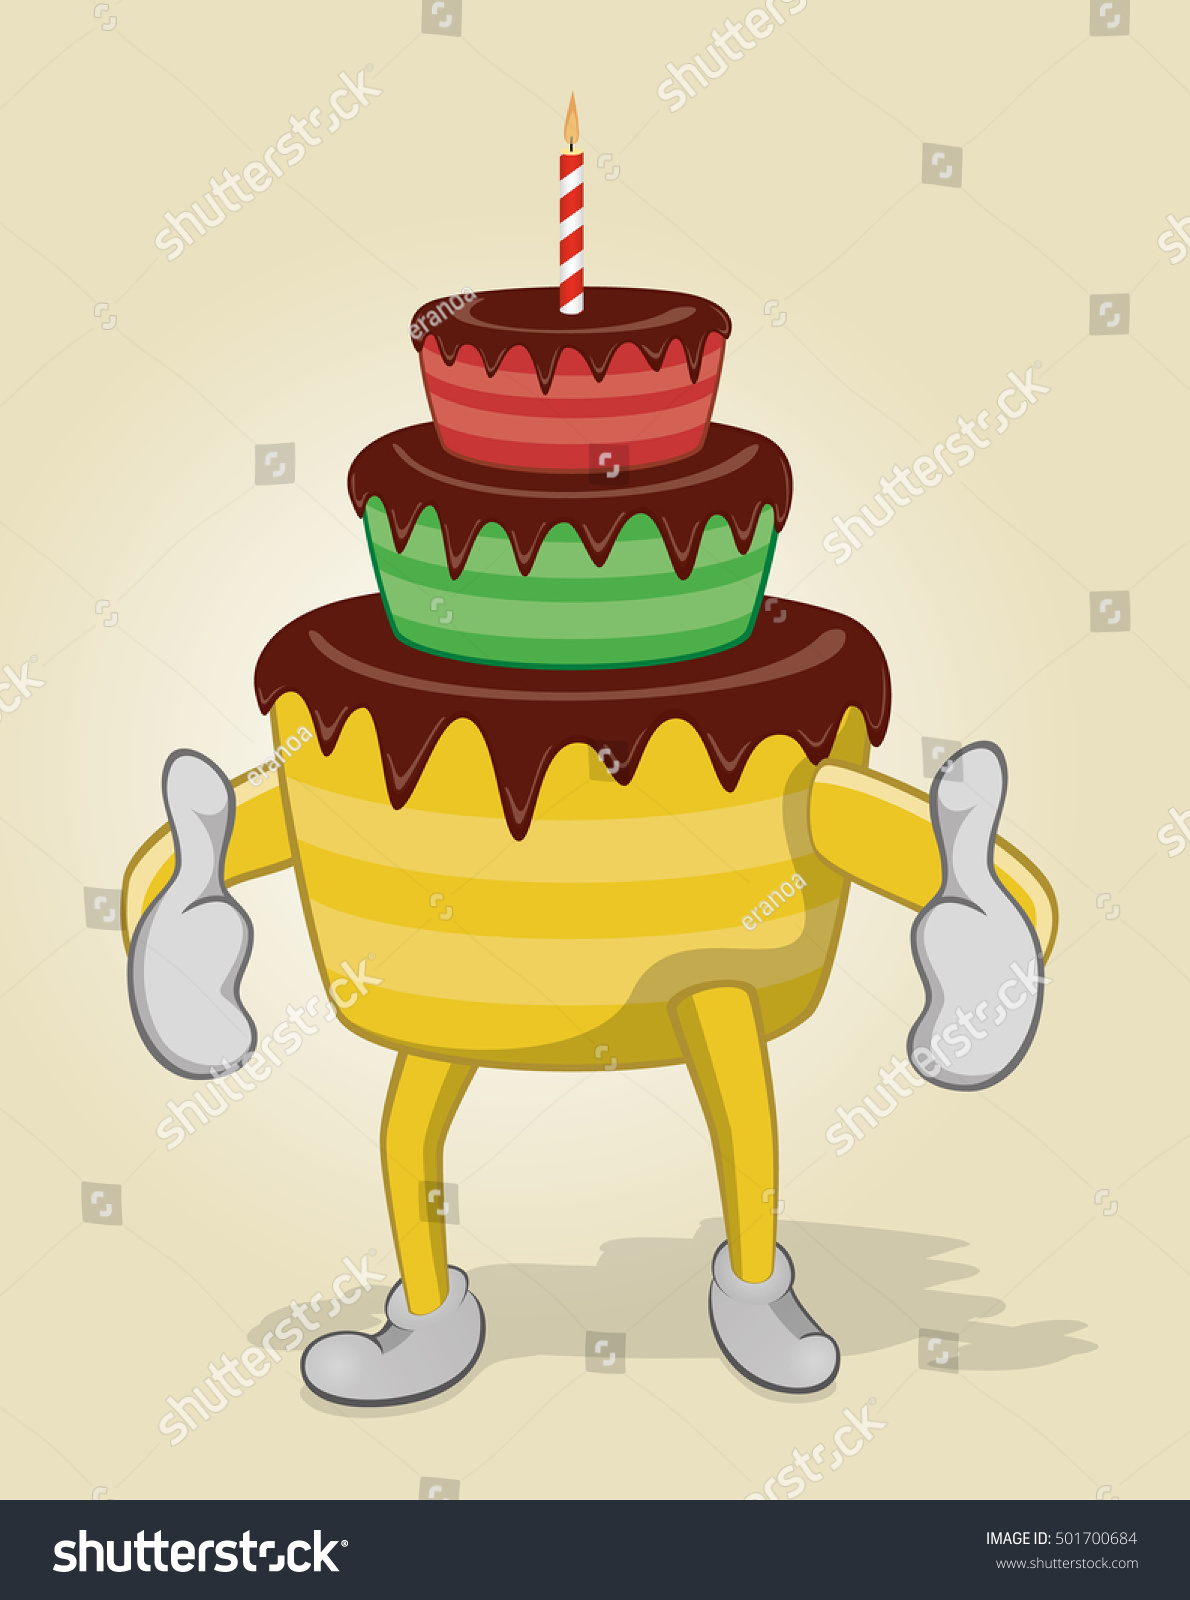 Birthday Cake Two Thumbs Stock Vector Royalty Free 501700684